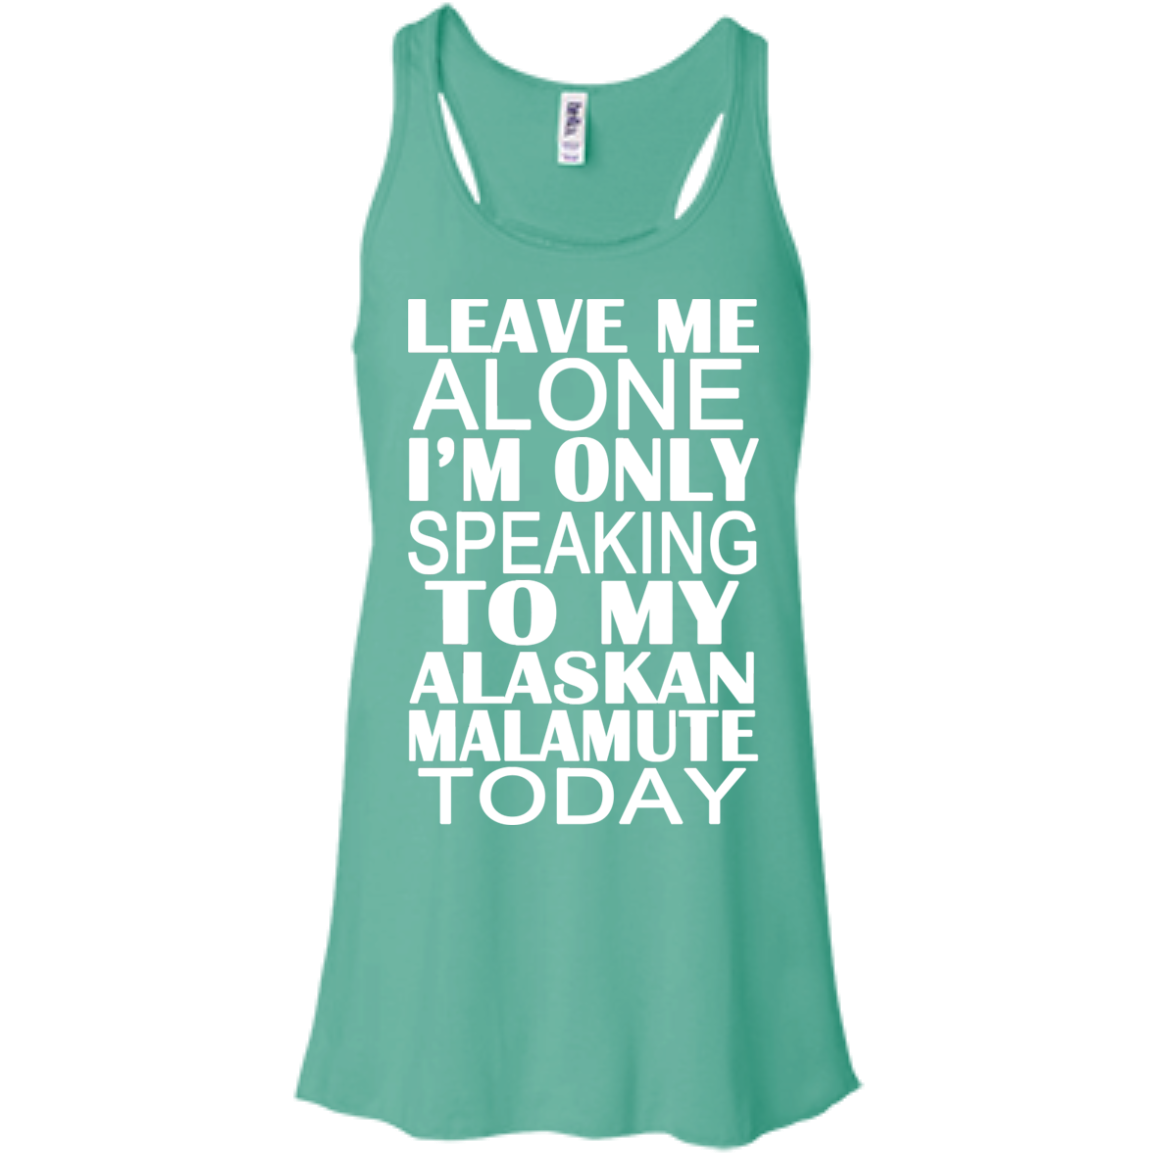 Leave Me Alone Im Only Speaking To My Alaskan Malamute Today Flowy Racerback Tanks